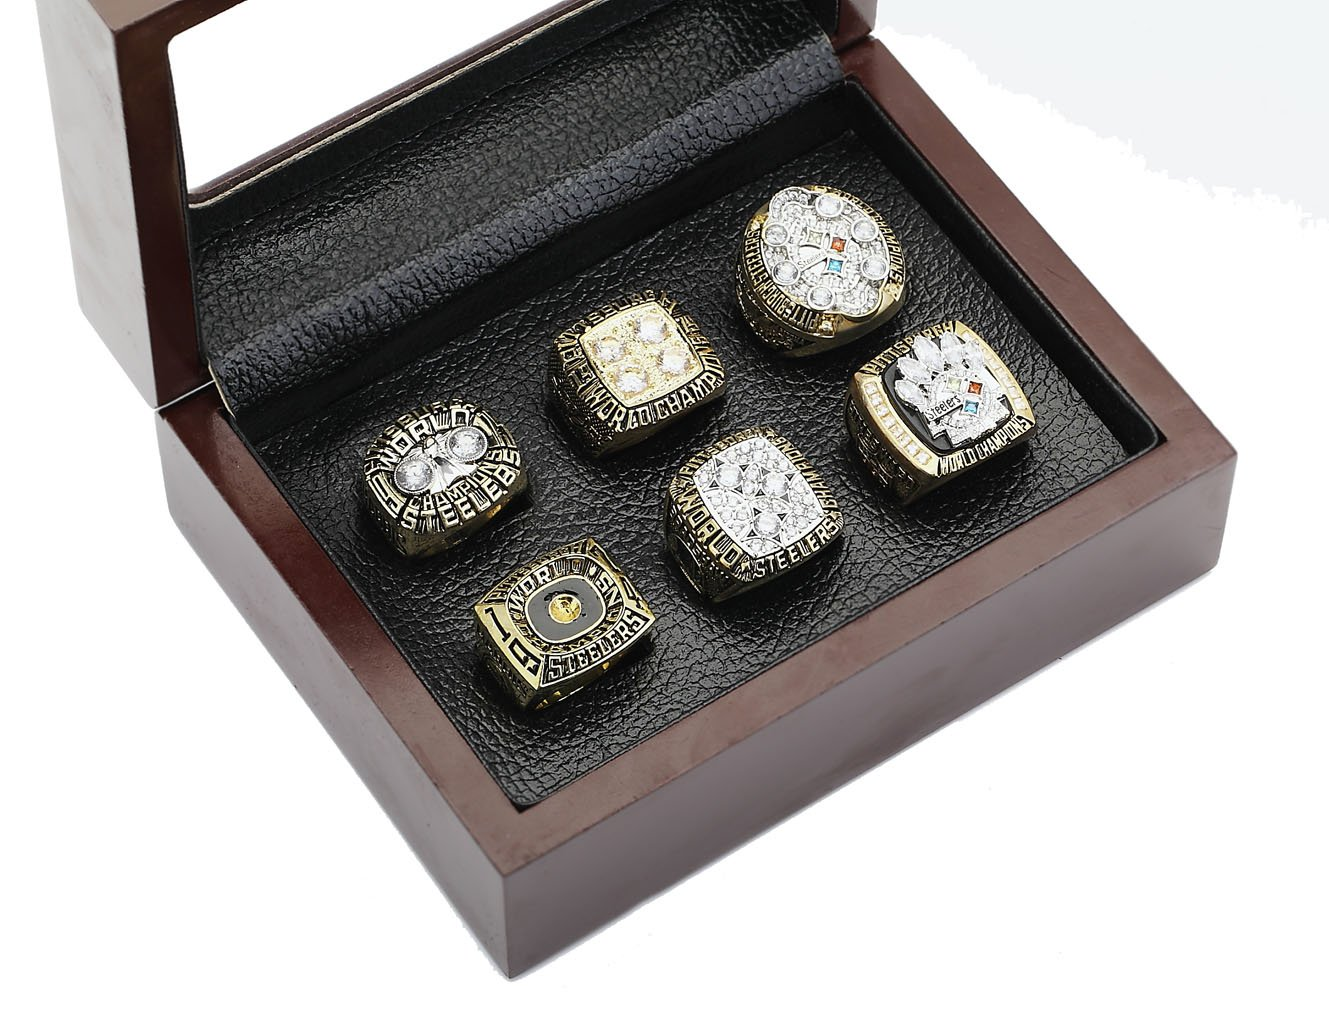 Steelers Super Bowl Championship Rings Full Set Replica